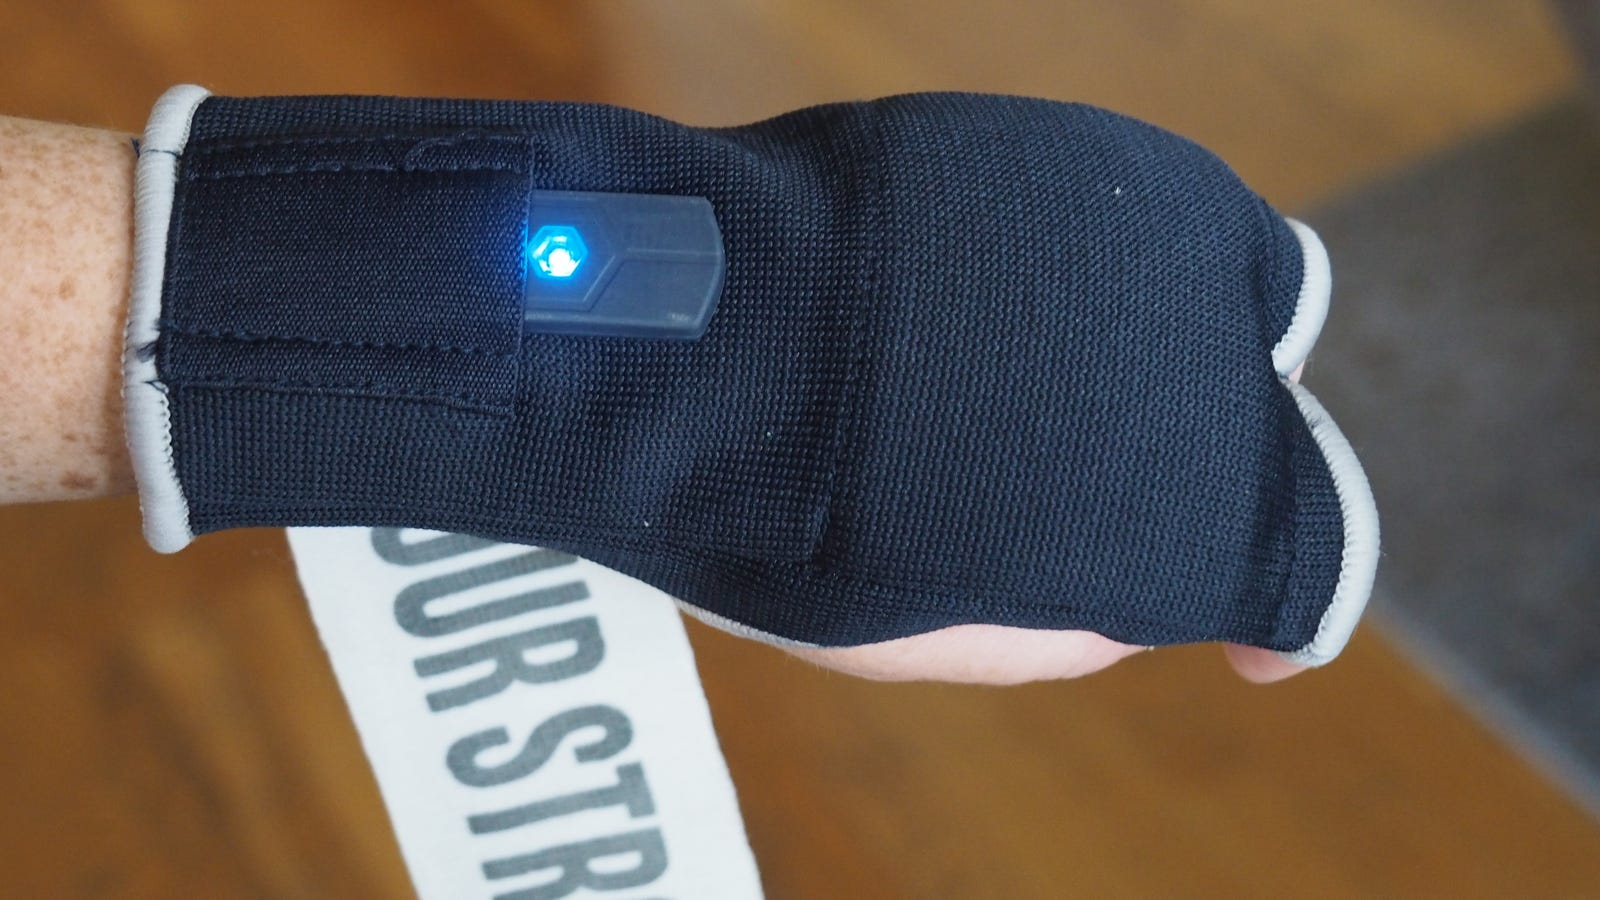 The tracker with the blue light slides into the blue hand wrap.